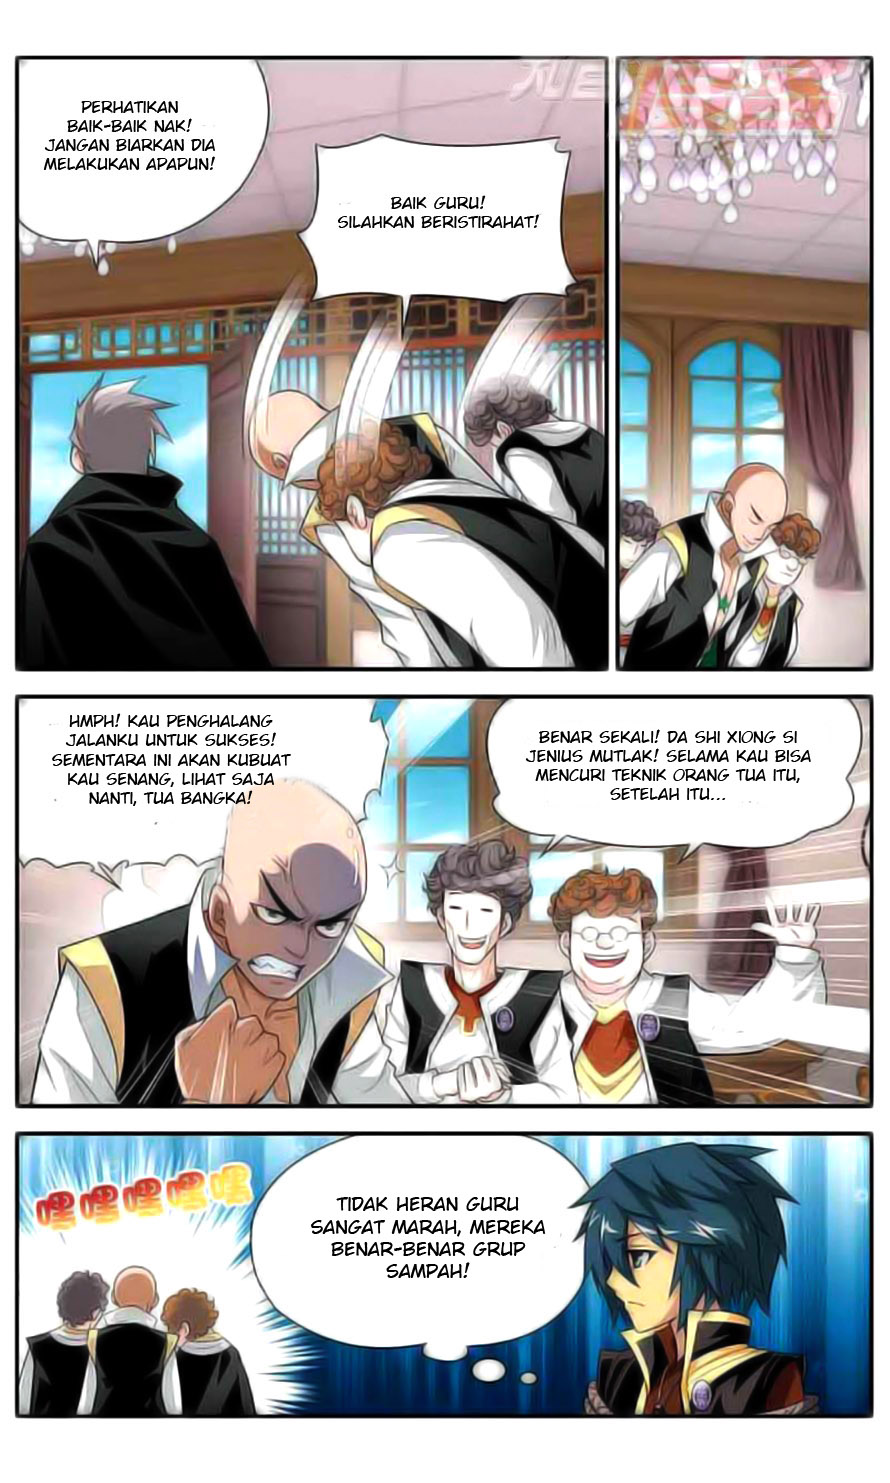 Dilarang COPAS - situs resmi www.mangacanblog.com - Komik battle through heaven 038 - chapter 38 39 Indonesia battle through heaven 038 - chapter 38 Terbaru 13|Baca Manga Komik Indonesia|Mangacan